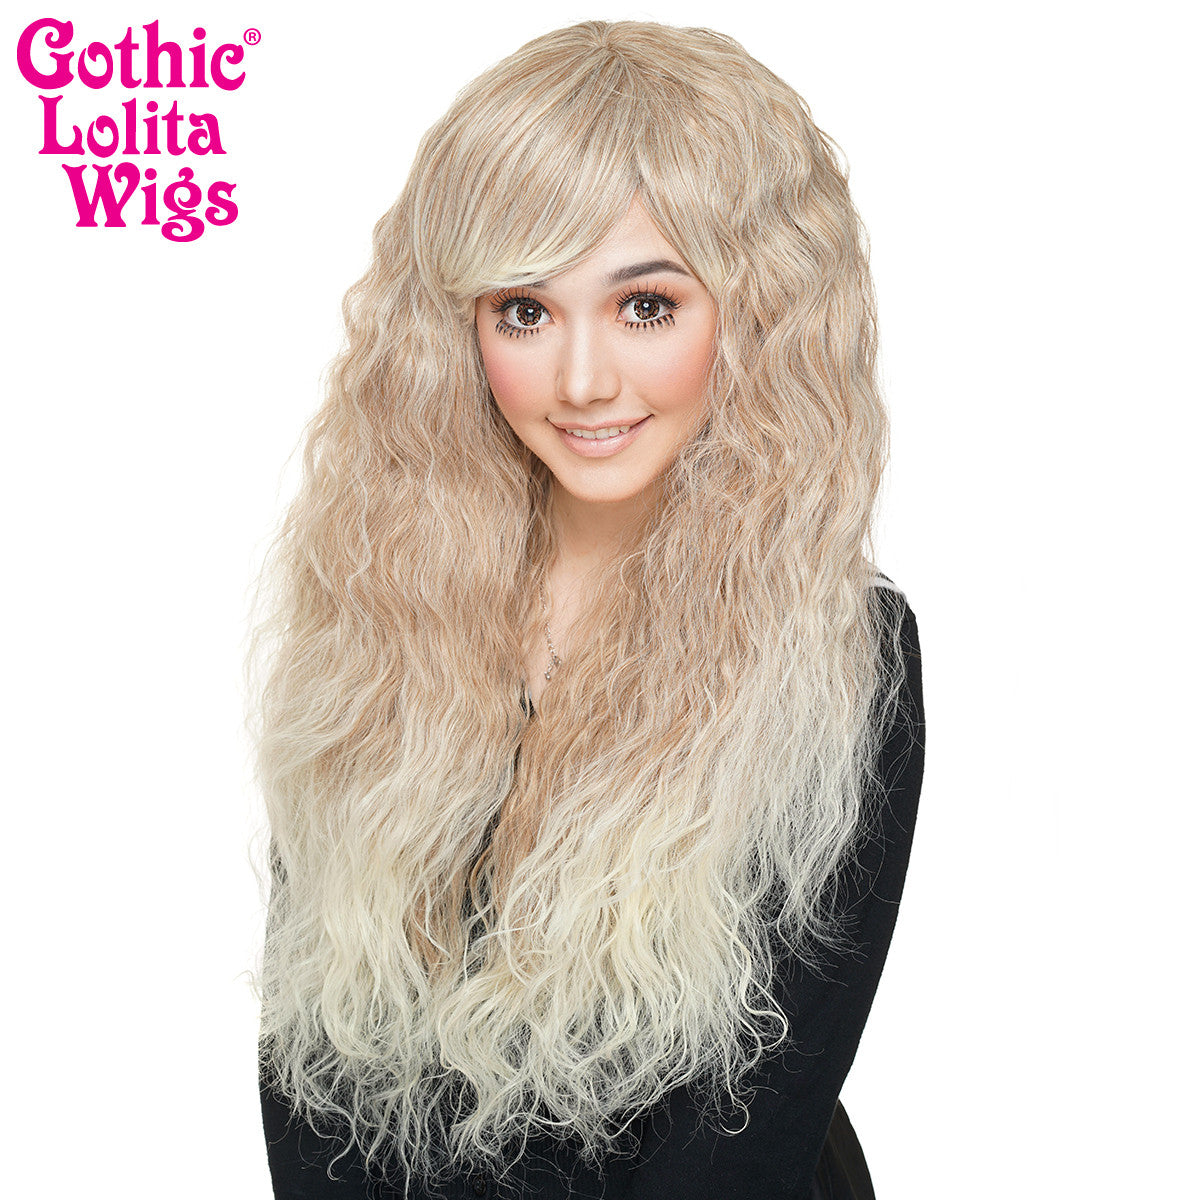 Gothic Lolita Wigs® <br> Rhapsody™ Collection - Blonde Fade -00100